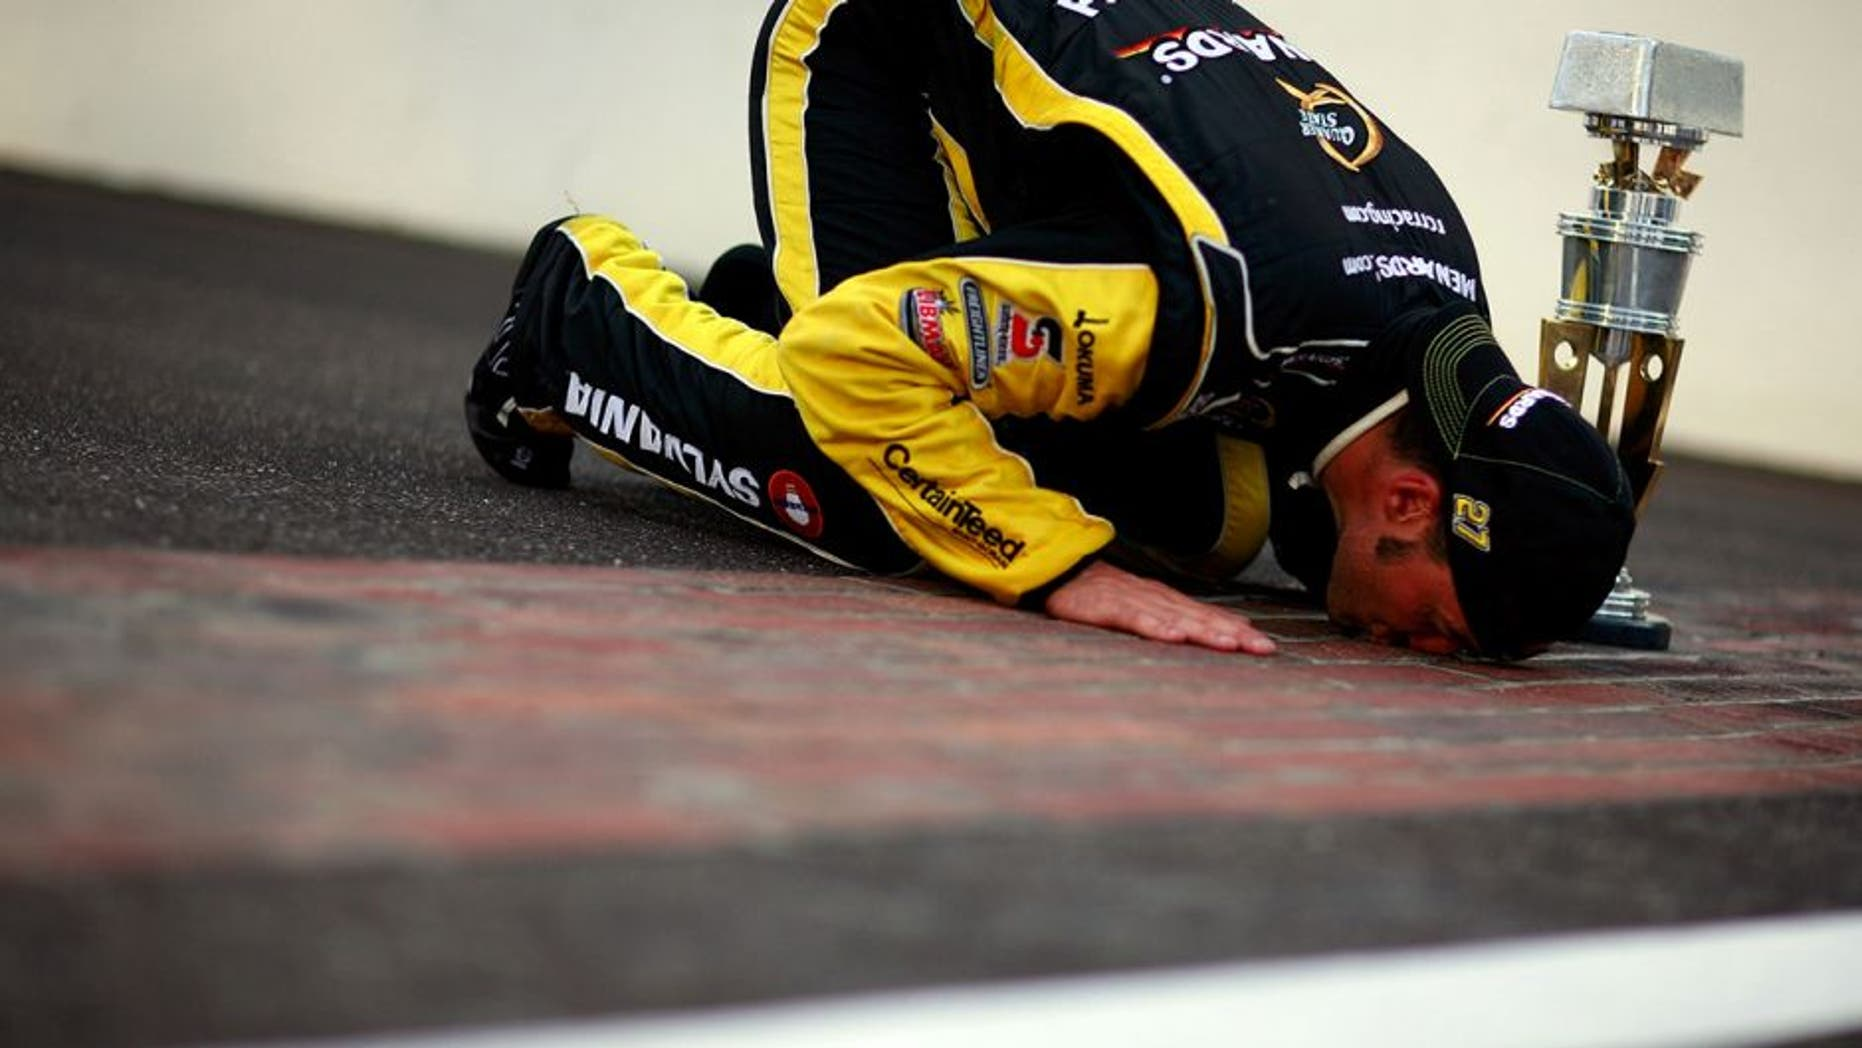 INDIANAPOLIS, IN - JULY 31: Paul Menard, driver of the #27 NIBCO/Menards Chevrolet, poses as he kisses the bricks after winning the NASCAR Sprint Cup Series Brickyard 400 at Indianapolis Motor Speedway on July 31, 2011 in Indianapolis, Indiana. (Photo by Tom Pennington/Getty Images for NASCAR)